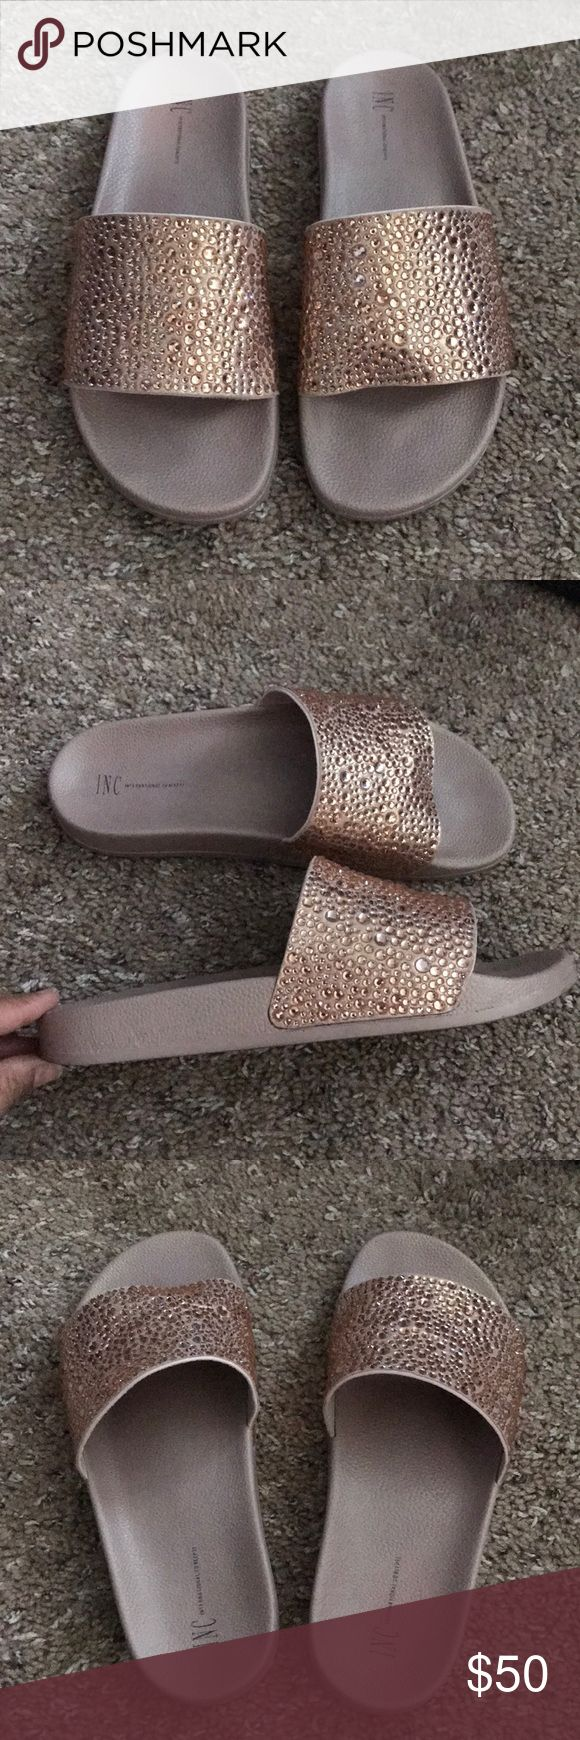 INC crystal slides EUC. Rose gold crystals. Worn 2x .. size 9. Comes with original box. INC International Concepts Shoes Sandals